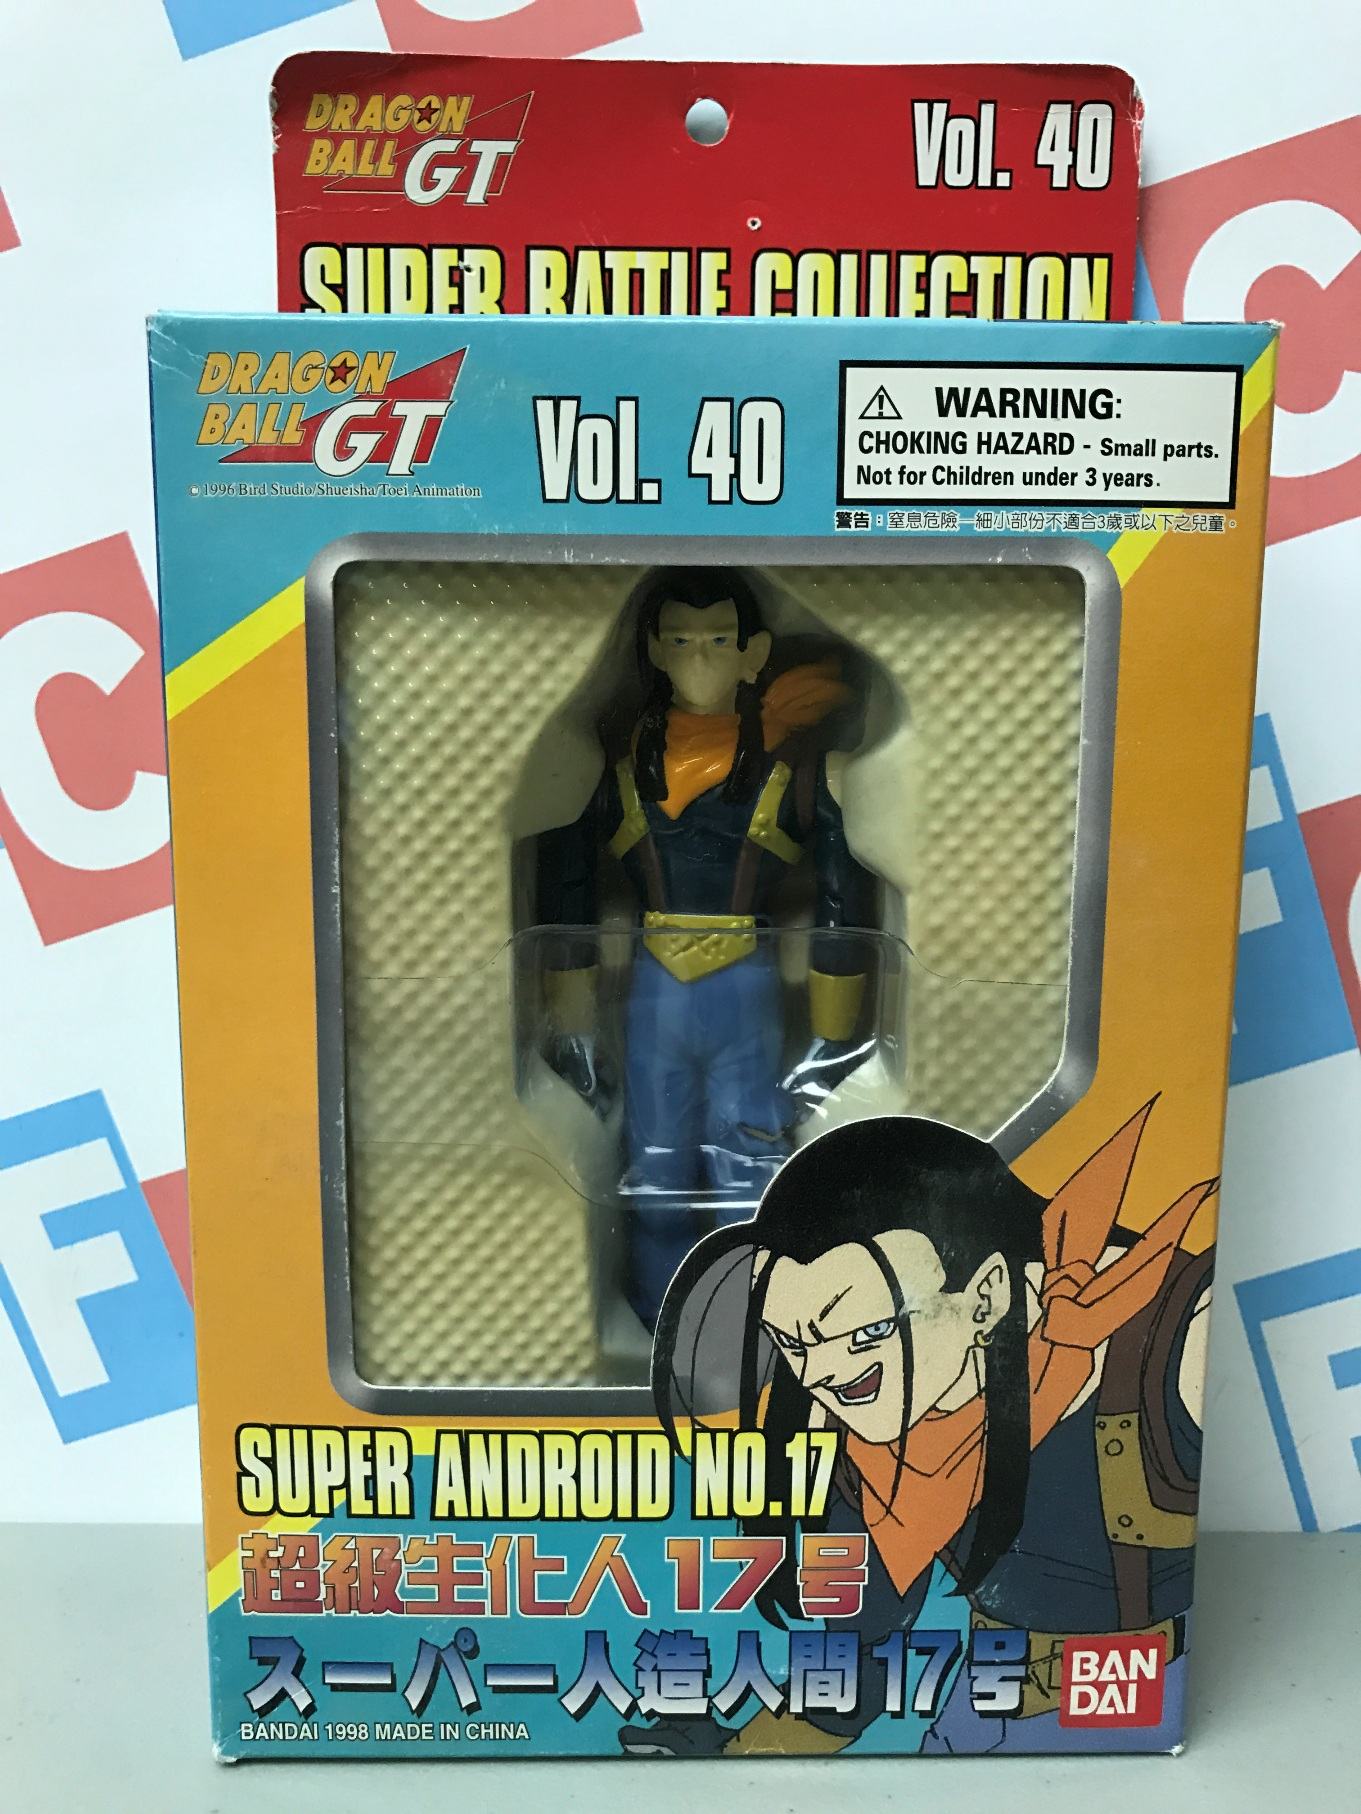 40: Super Android No. 17 (Alt. Box)